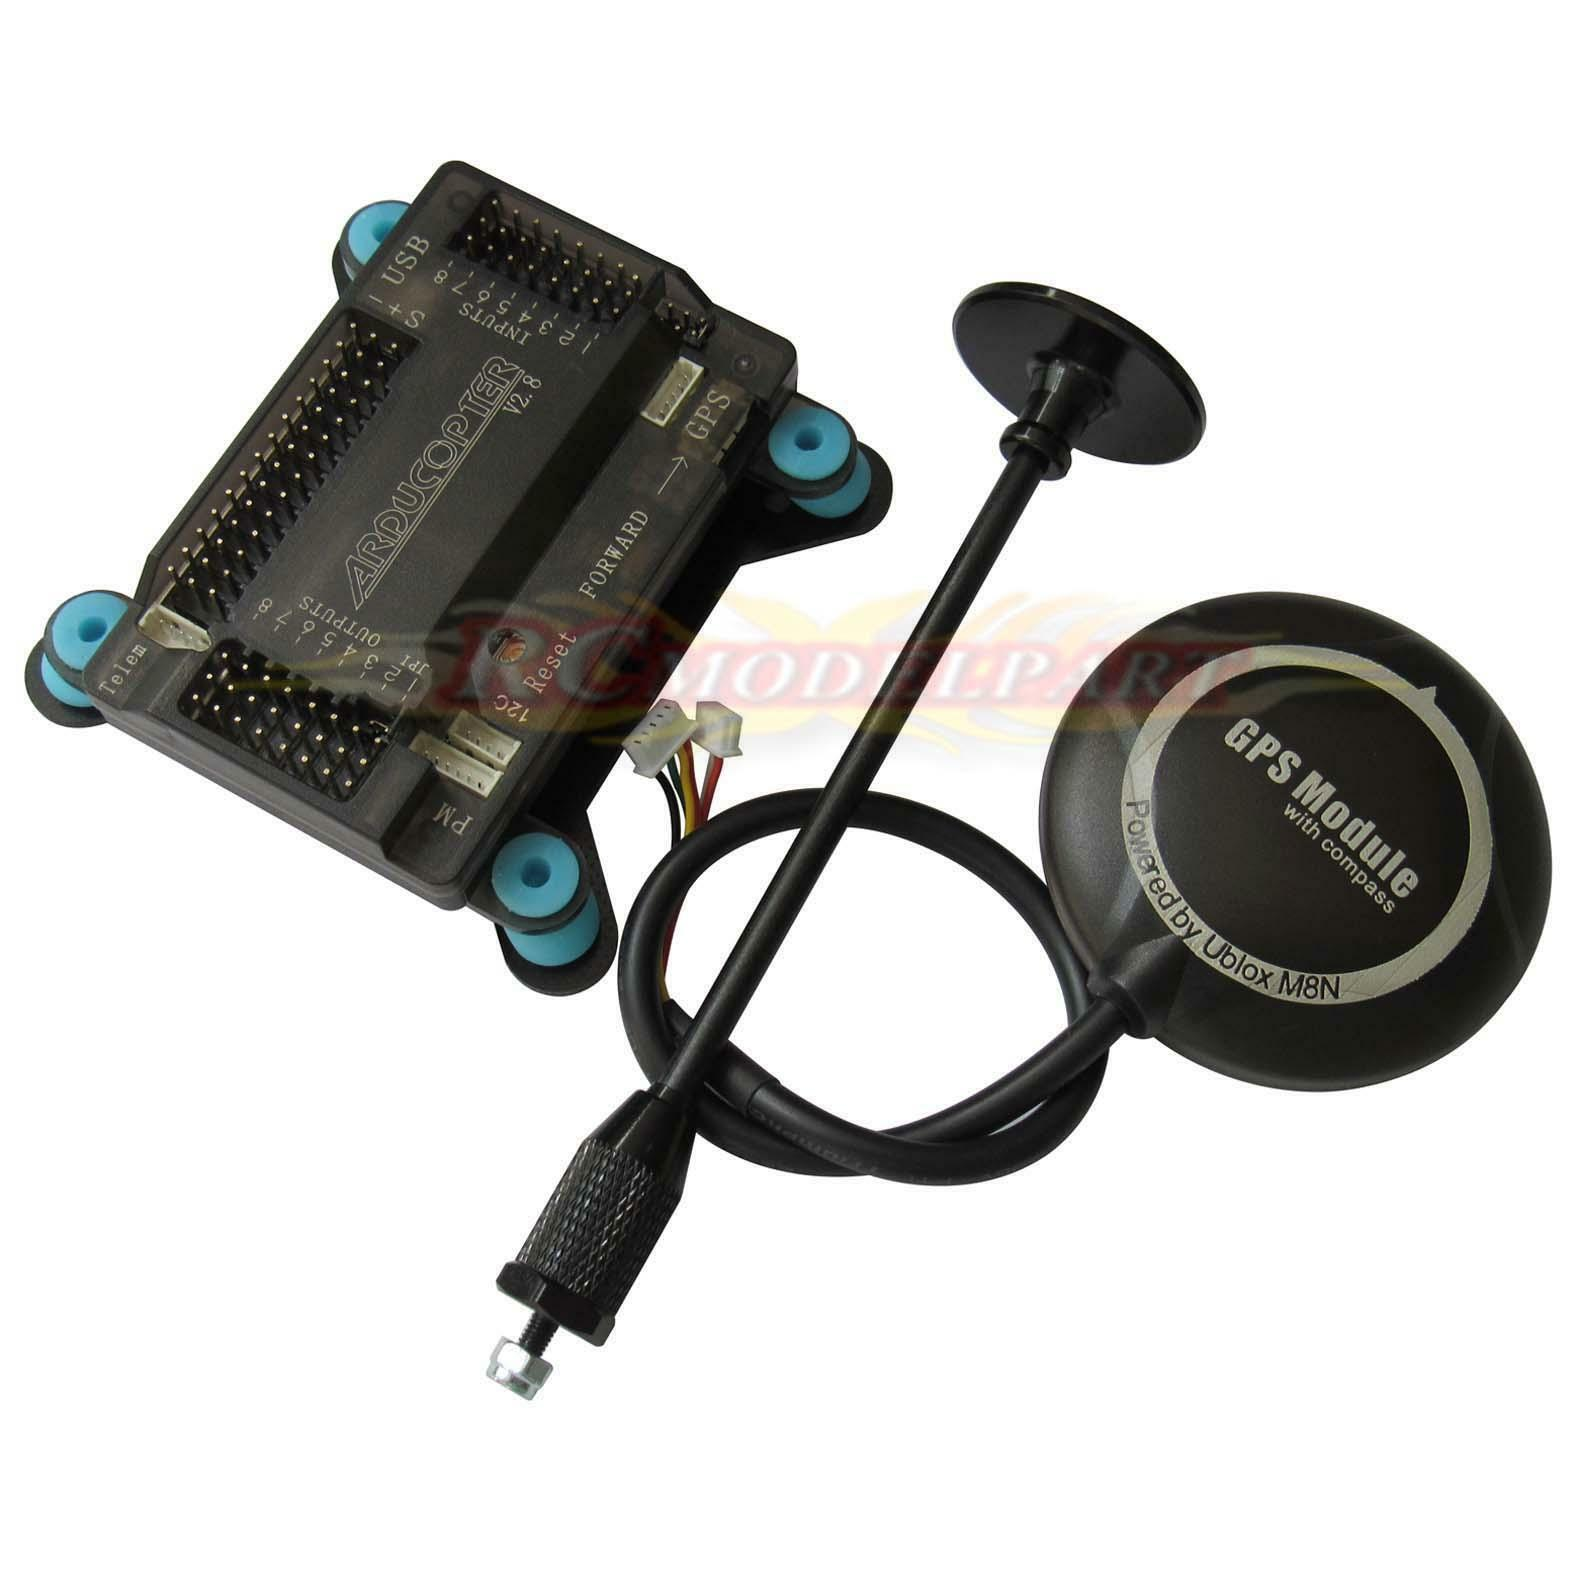 APM2.8 Flight Controller & NEO-M8N GPS Module for RC Multi-redor Quadcopter 450